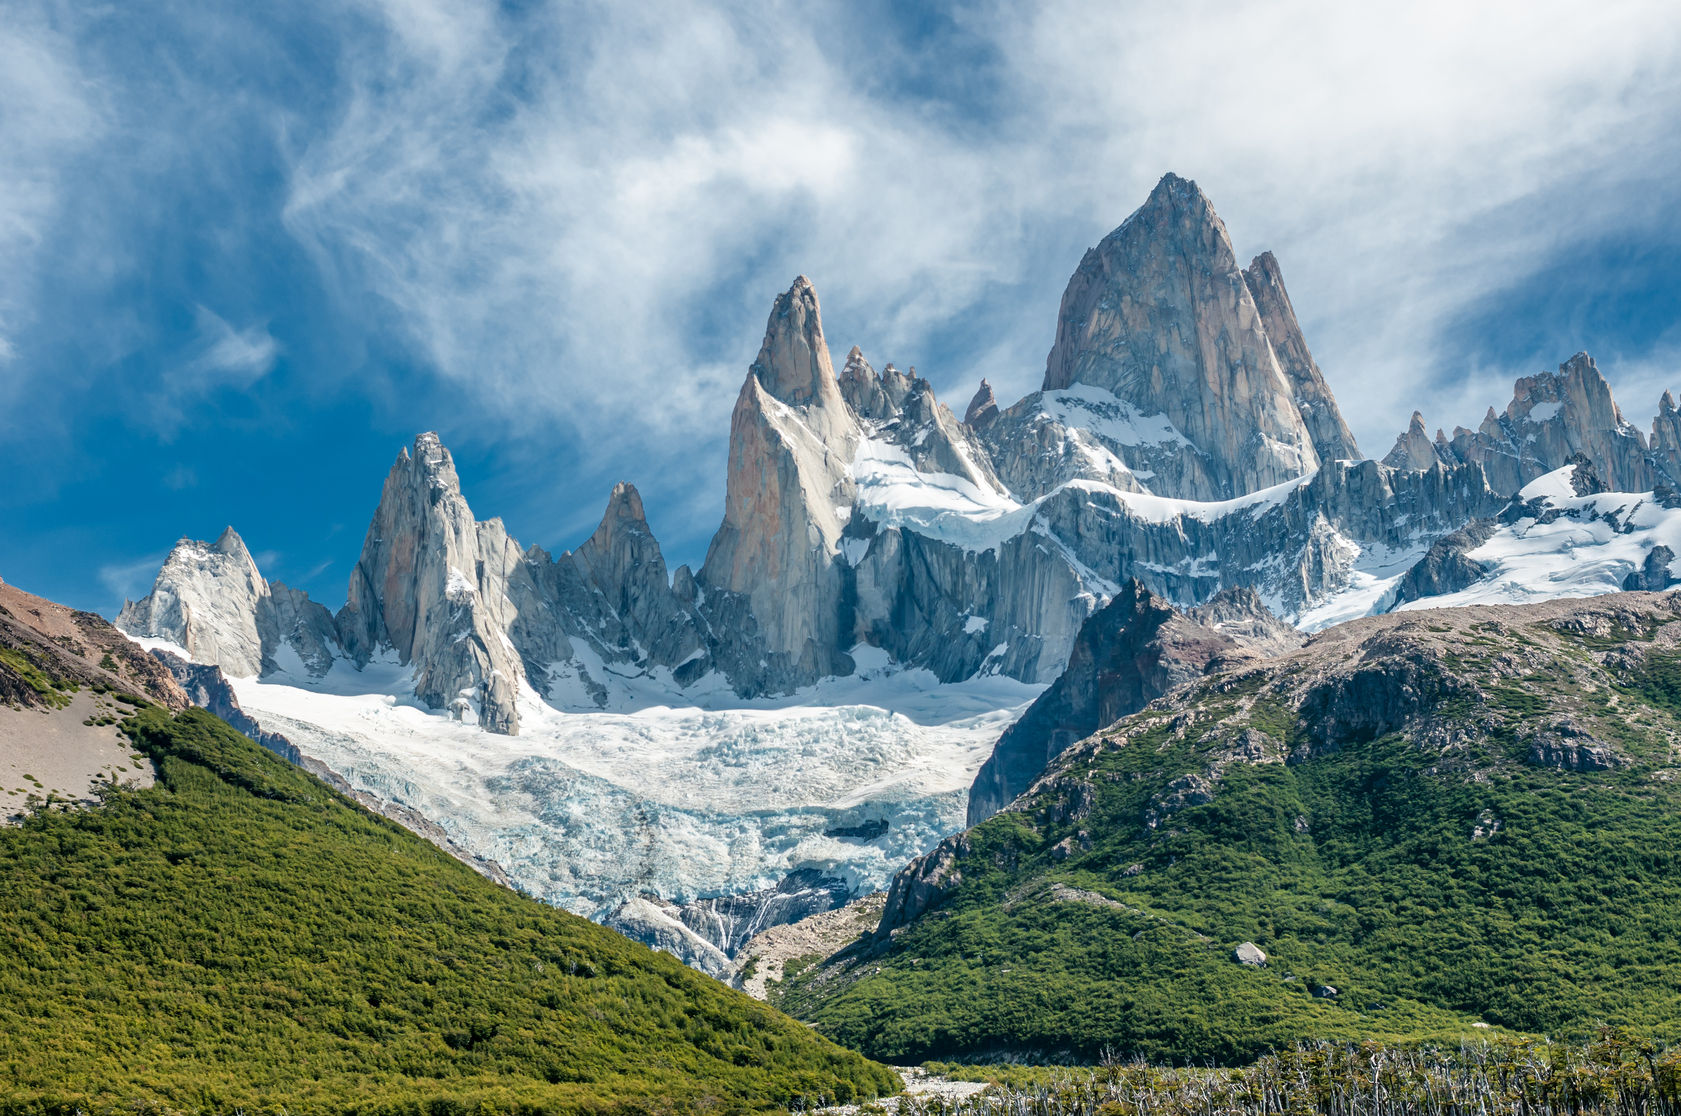 Mount Fitz Roy in Argentina